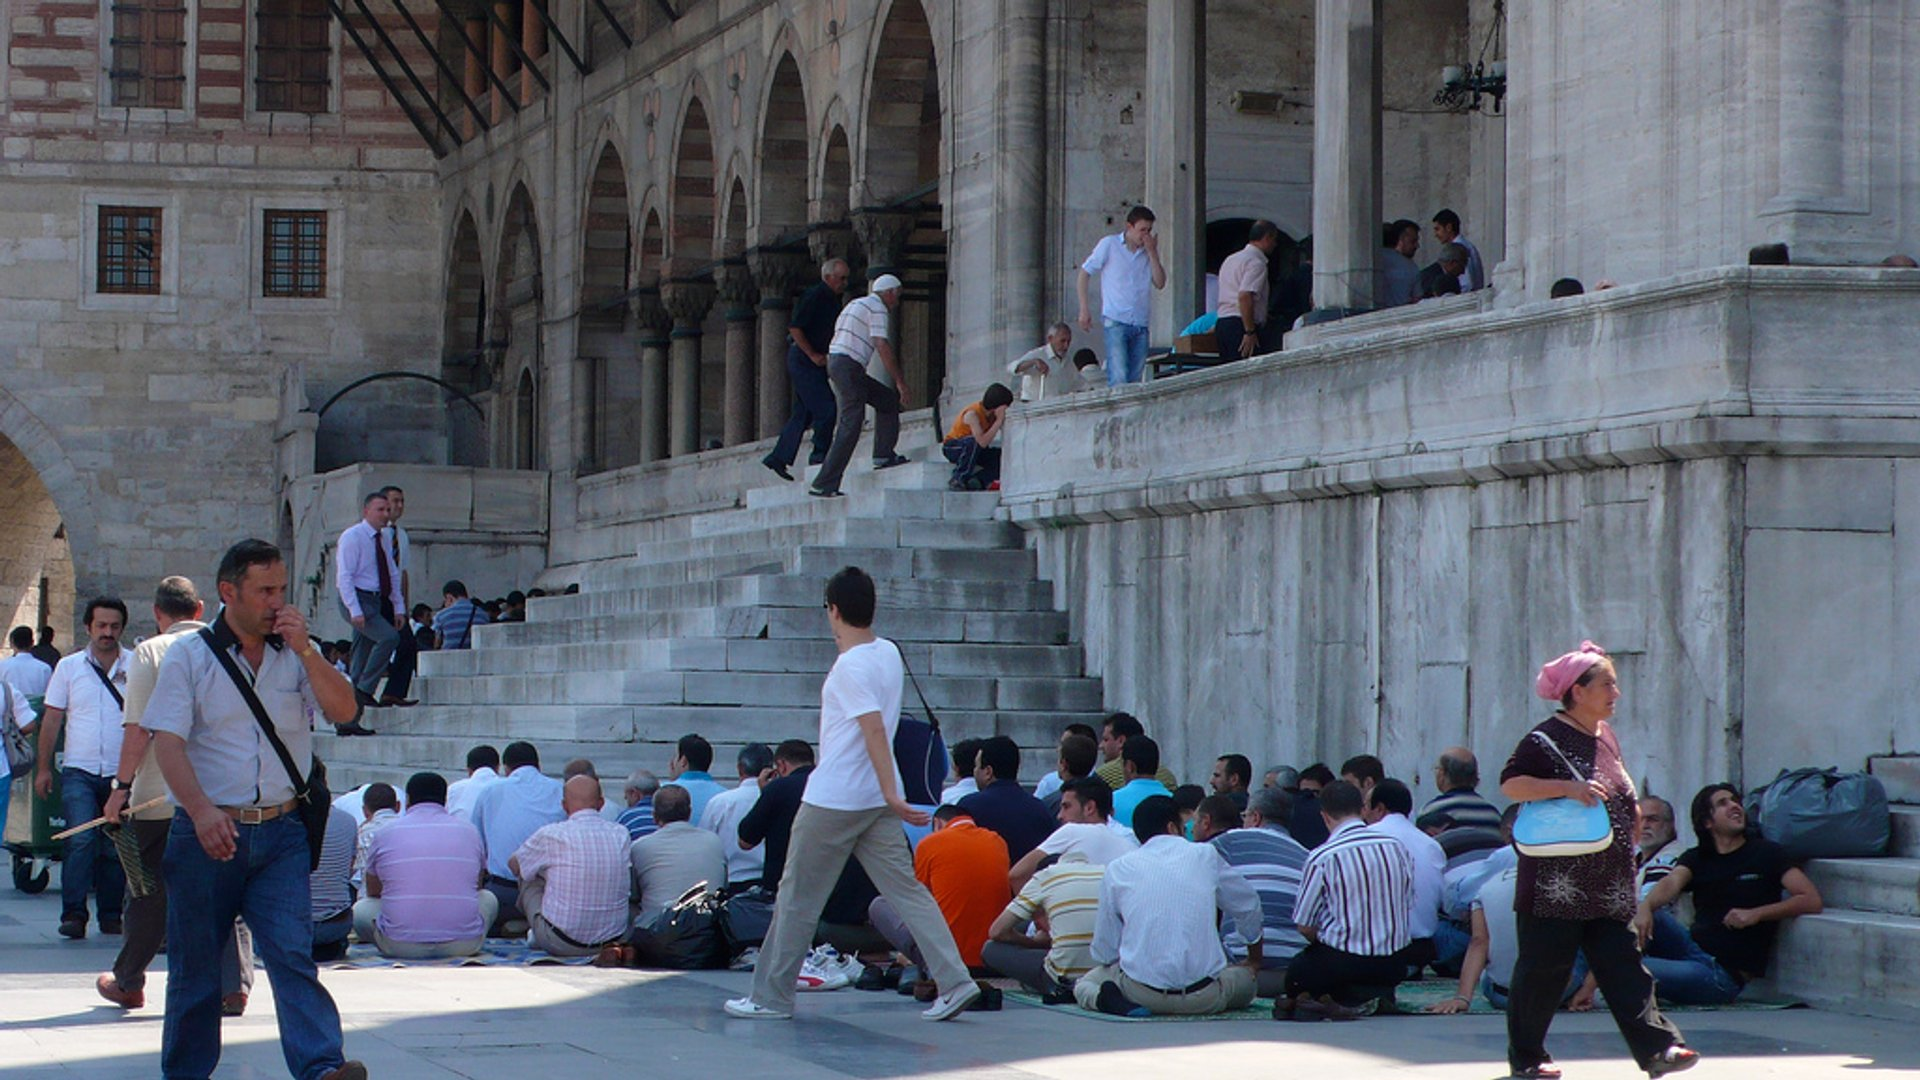 Call to Prayer between Blue Mosque & Hagia Sophia in Istanbul - Best Season 2020